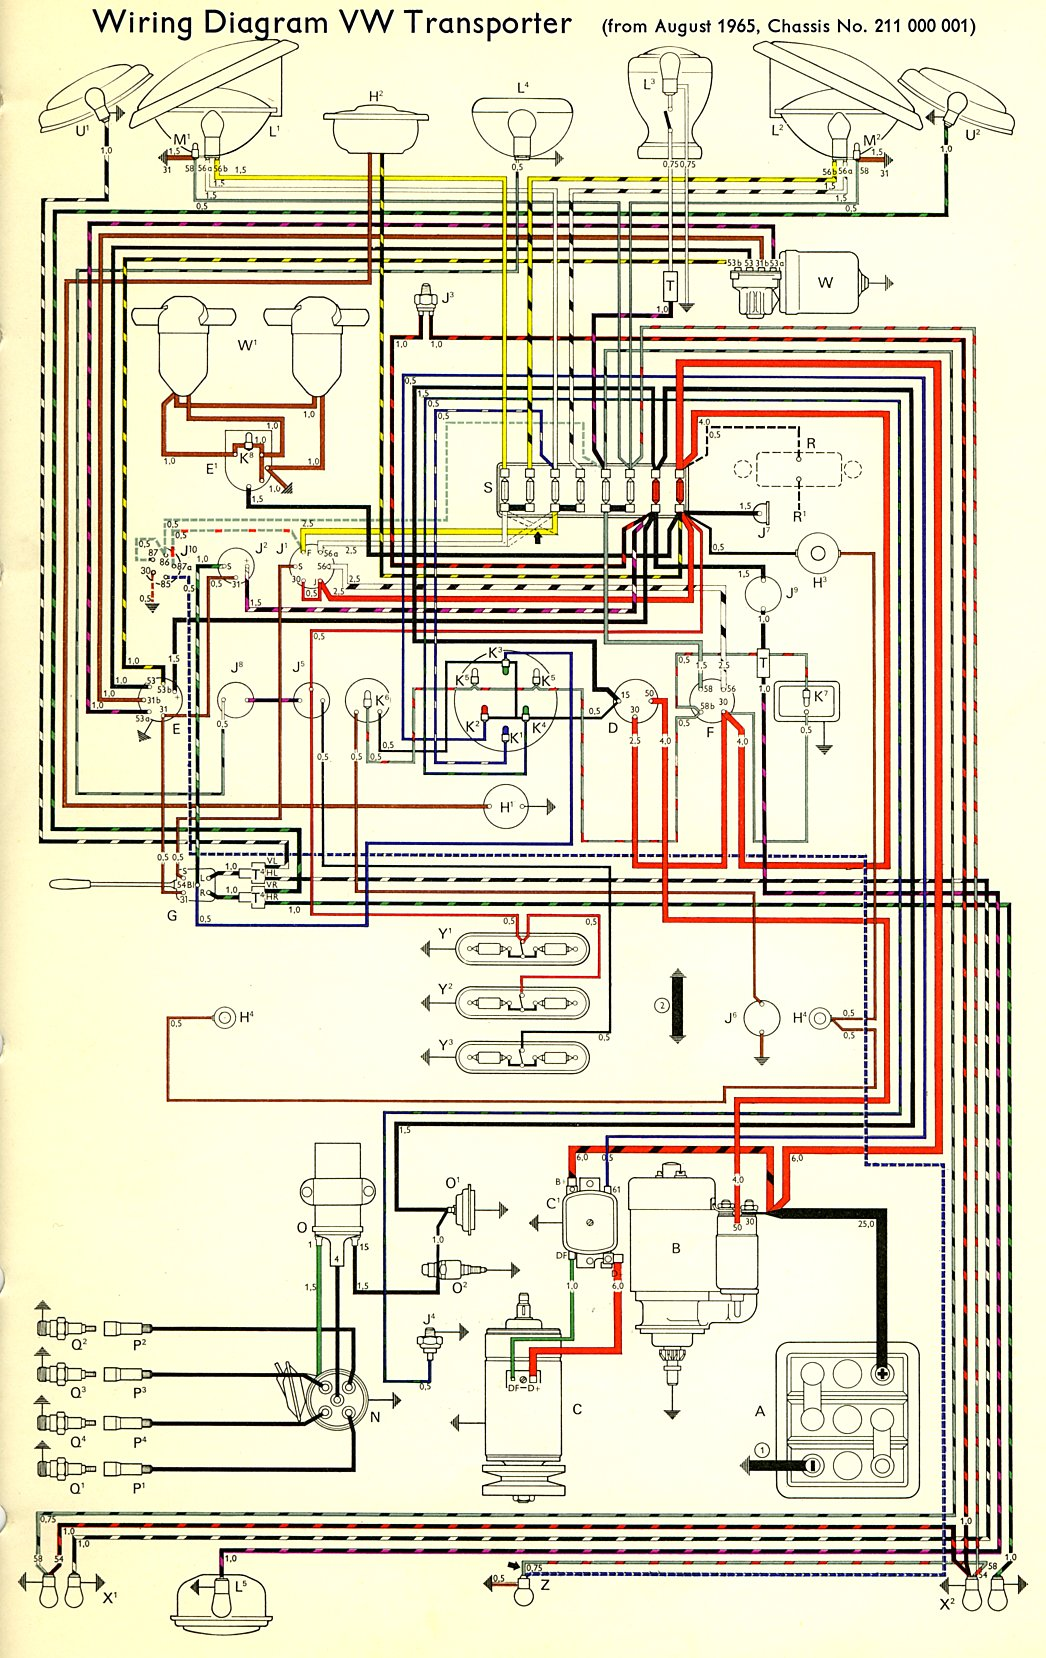 1966    Bus       Wiring       diagram      TheGoldenBug